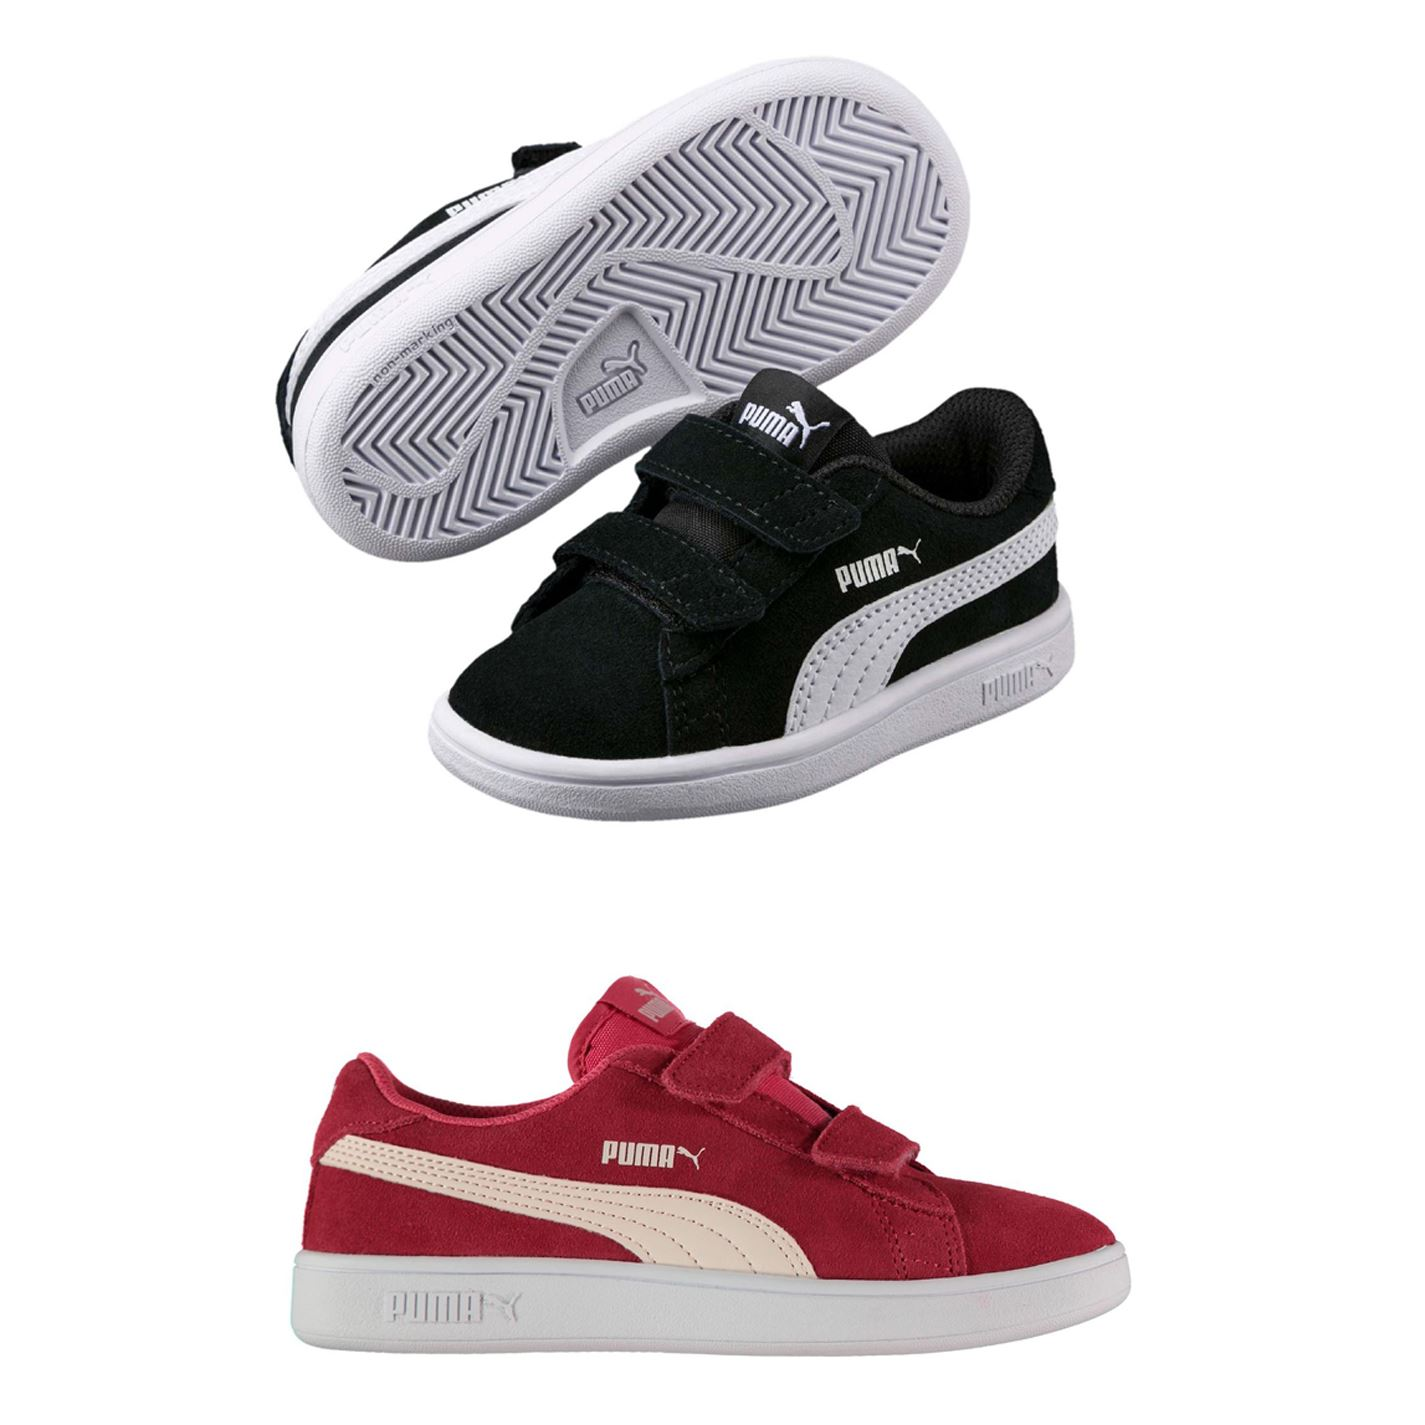 Details about Puma Smash Suede Infant Girls Trainers Shoes Footwear